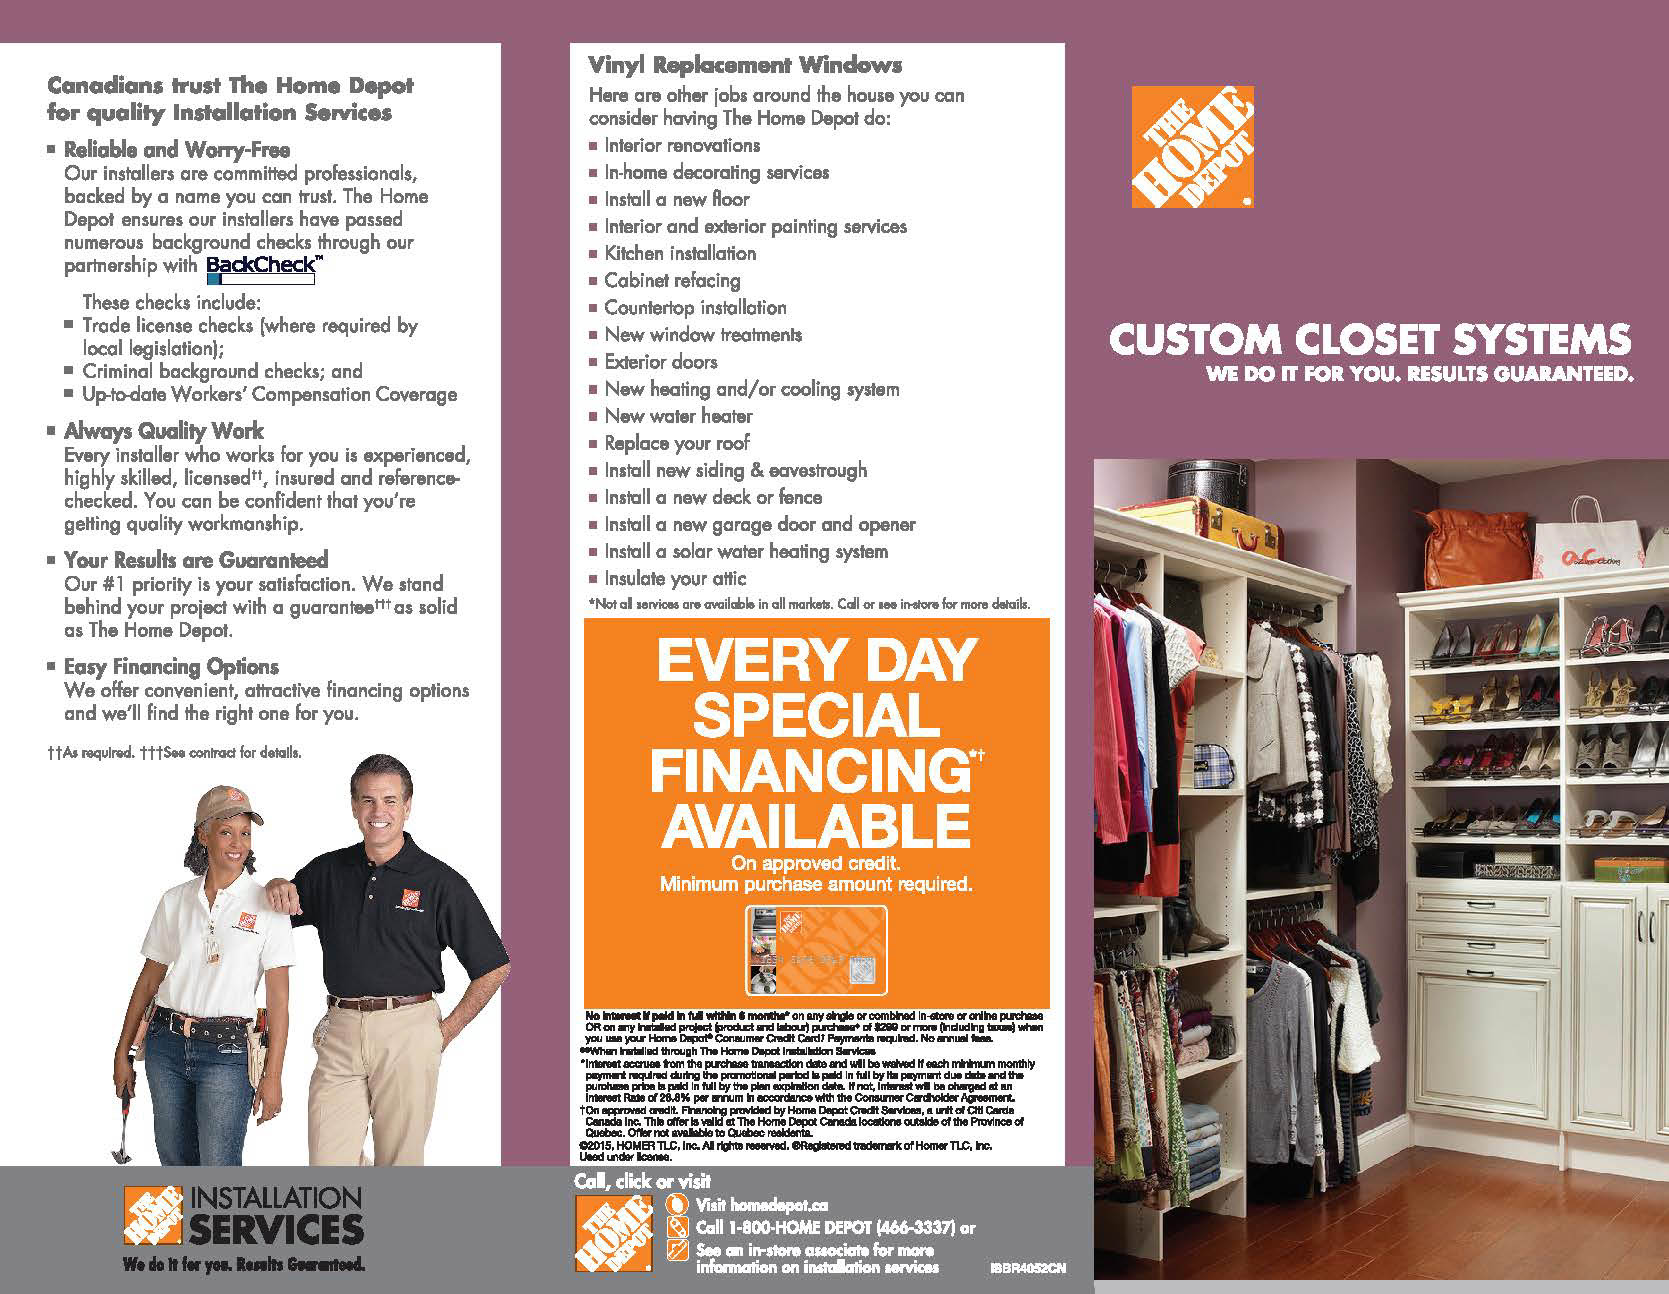 Home Depot Design Jobs 100 Home Depot Graphic Design Jobs 100 Home Based